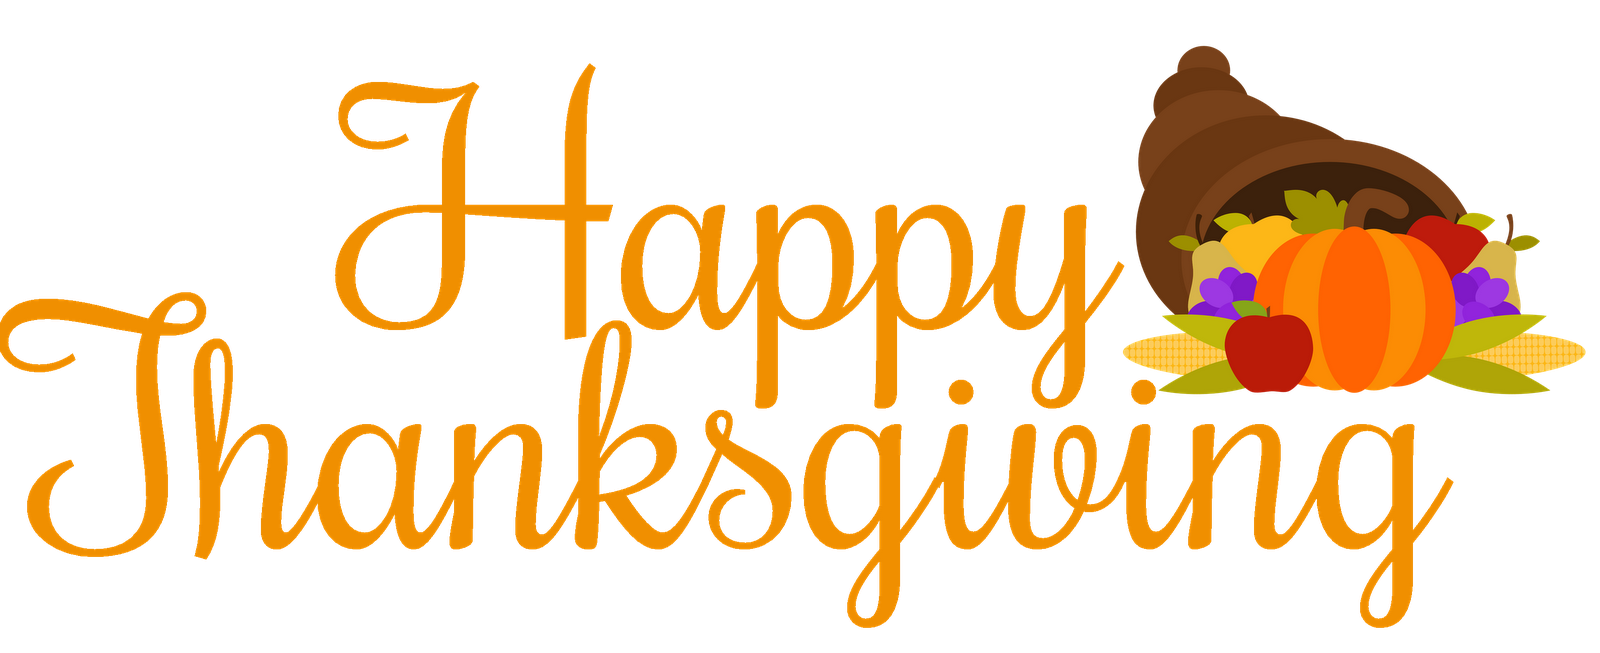 1600x653 Thanksgiving ~ Awesomegc2a0clip Art Image Ideasg Clip Images For